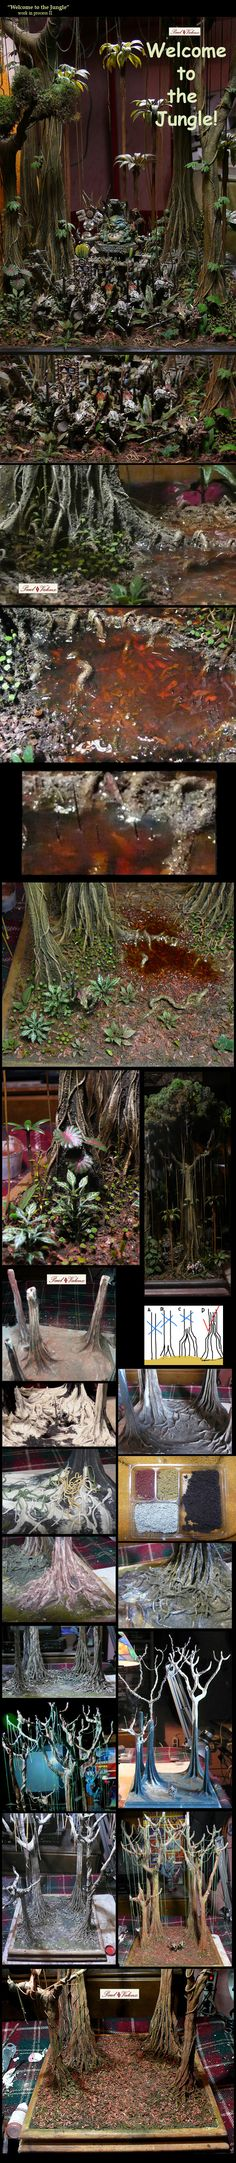 Exhibition of dioramas painted by other artists from around the world.